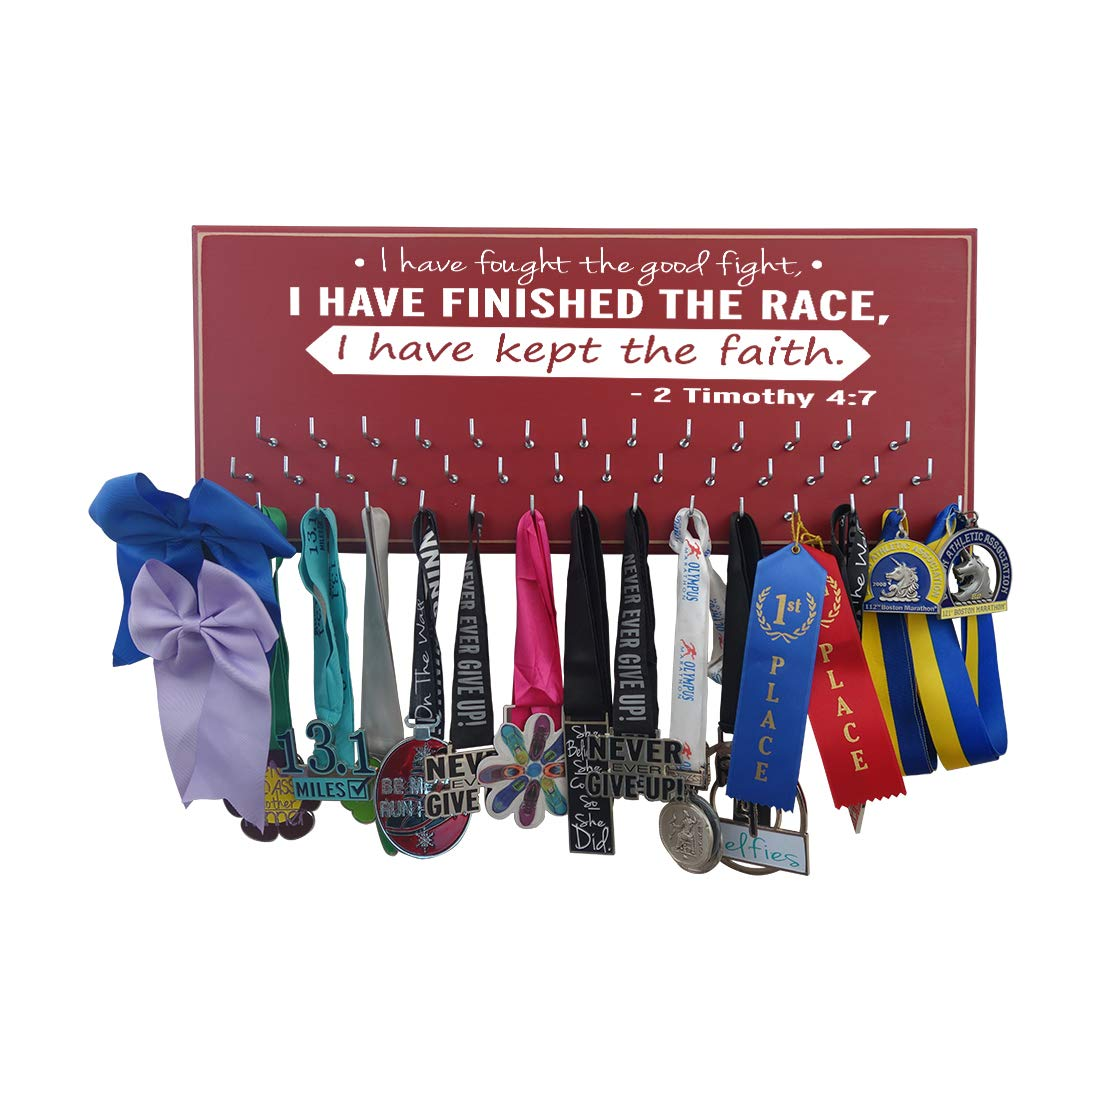 Running on the wall-gifts for runners-marathon Medal display-medalラックfor running- Awardsハンガー – 壁マウントholder-「私が戦ったA Good Fight。。。- - - - - - - 2 Timothy 4 : 7